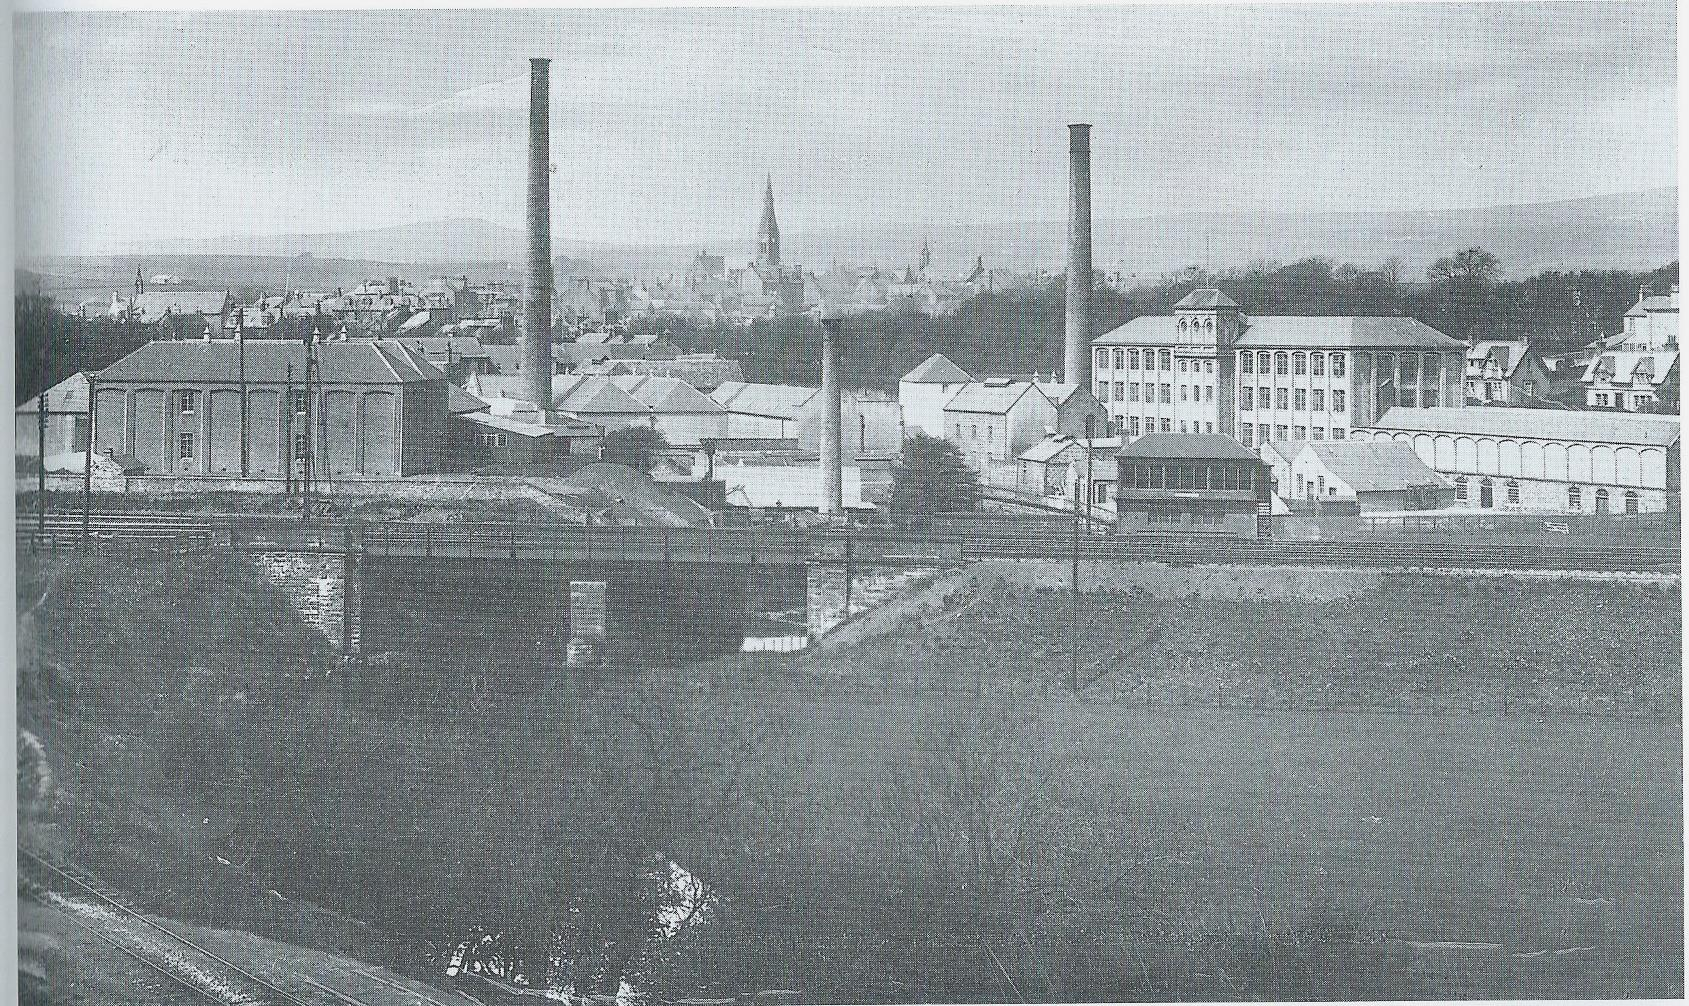 Spinning Mills  opened by Thomas Biggart in 1876. Later this became the biggest employer in Dalry. The Bridgend Mill, wool and later weaving, was the largest mill in Dalry in the 1890's